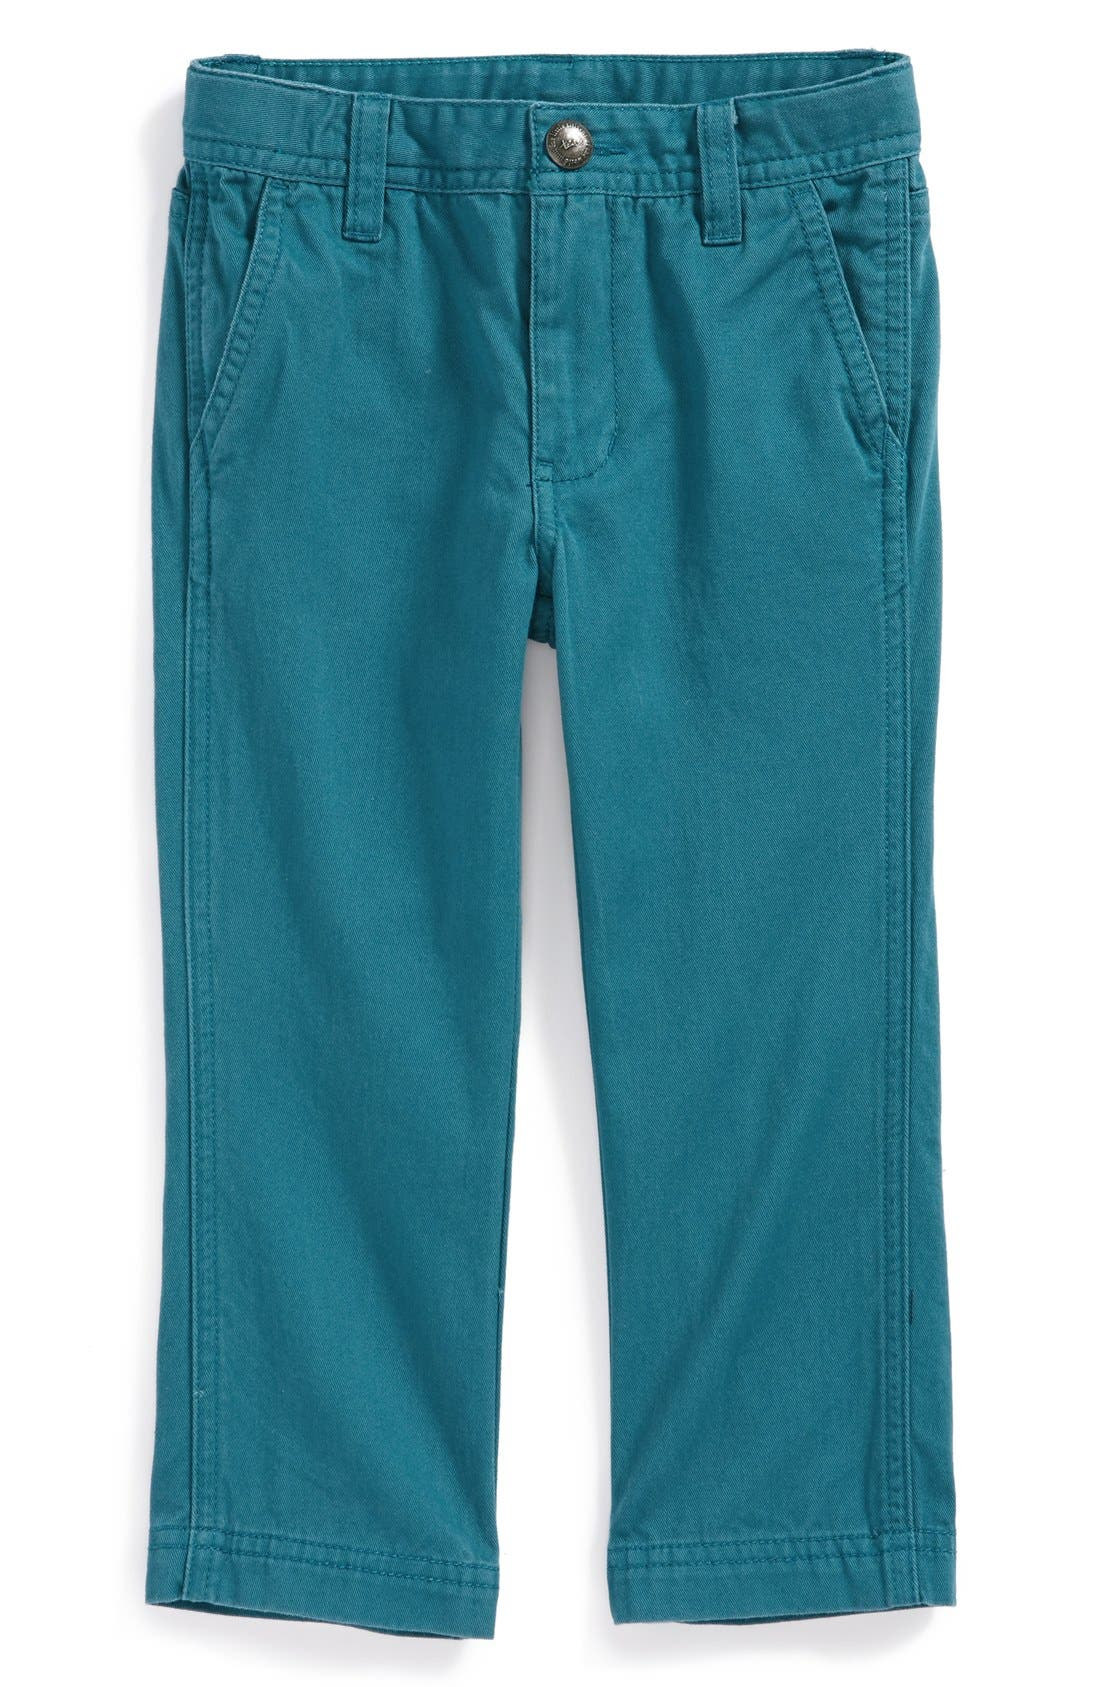 Alternate Image 1 Selected - Tea Collection Twill Chinos (Toddler Boys)